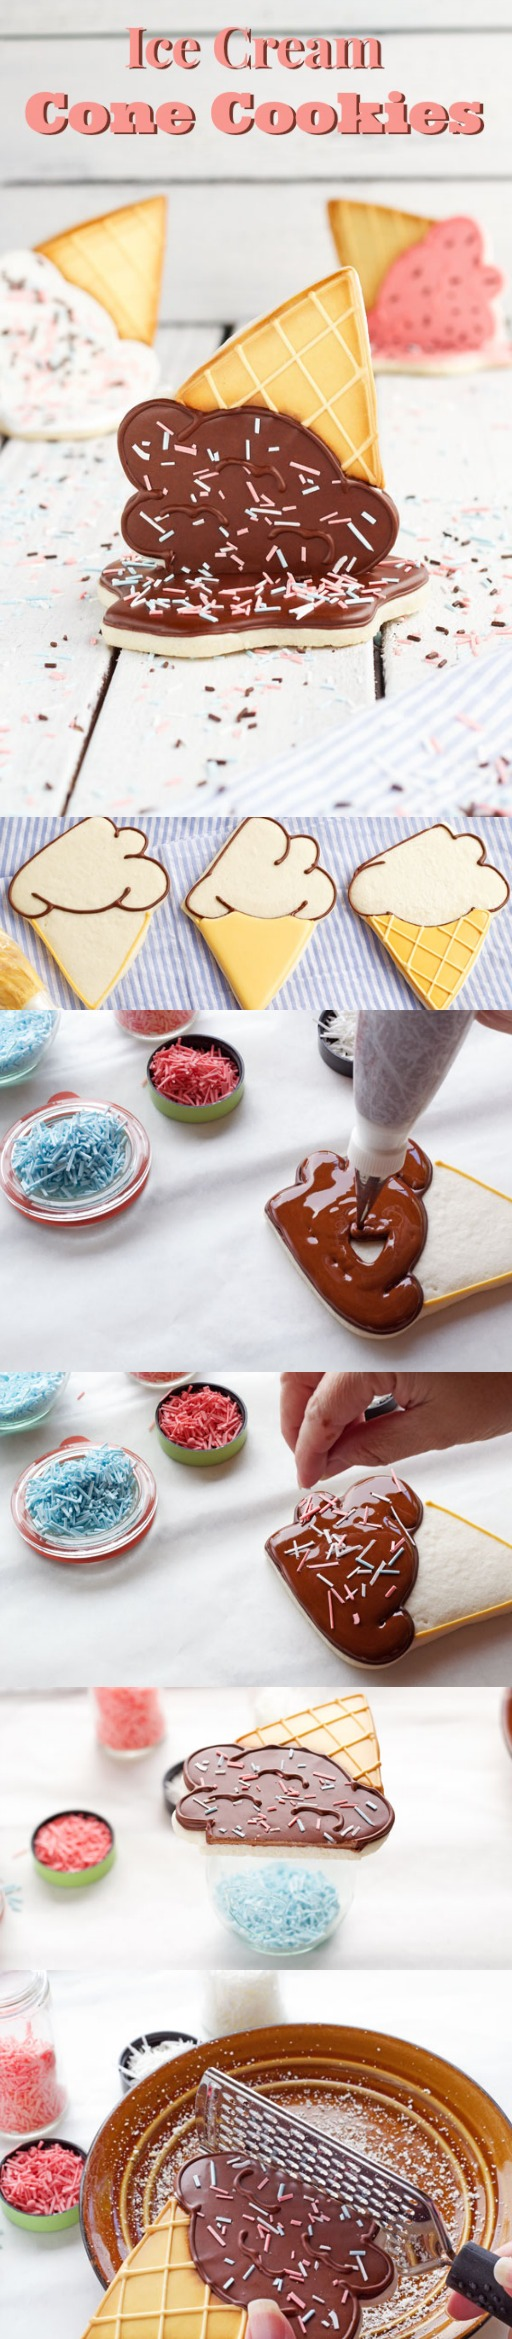 How to Make Ice Cream Cone Cookies www.thebearfootbaker.com.jpg